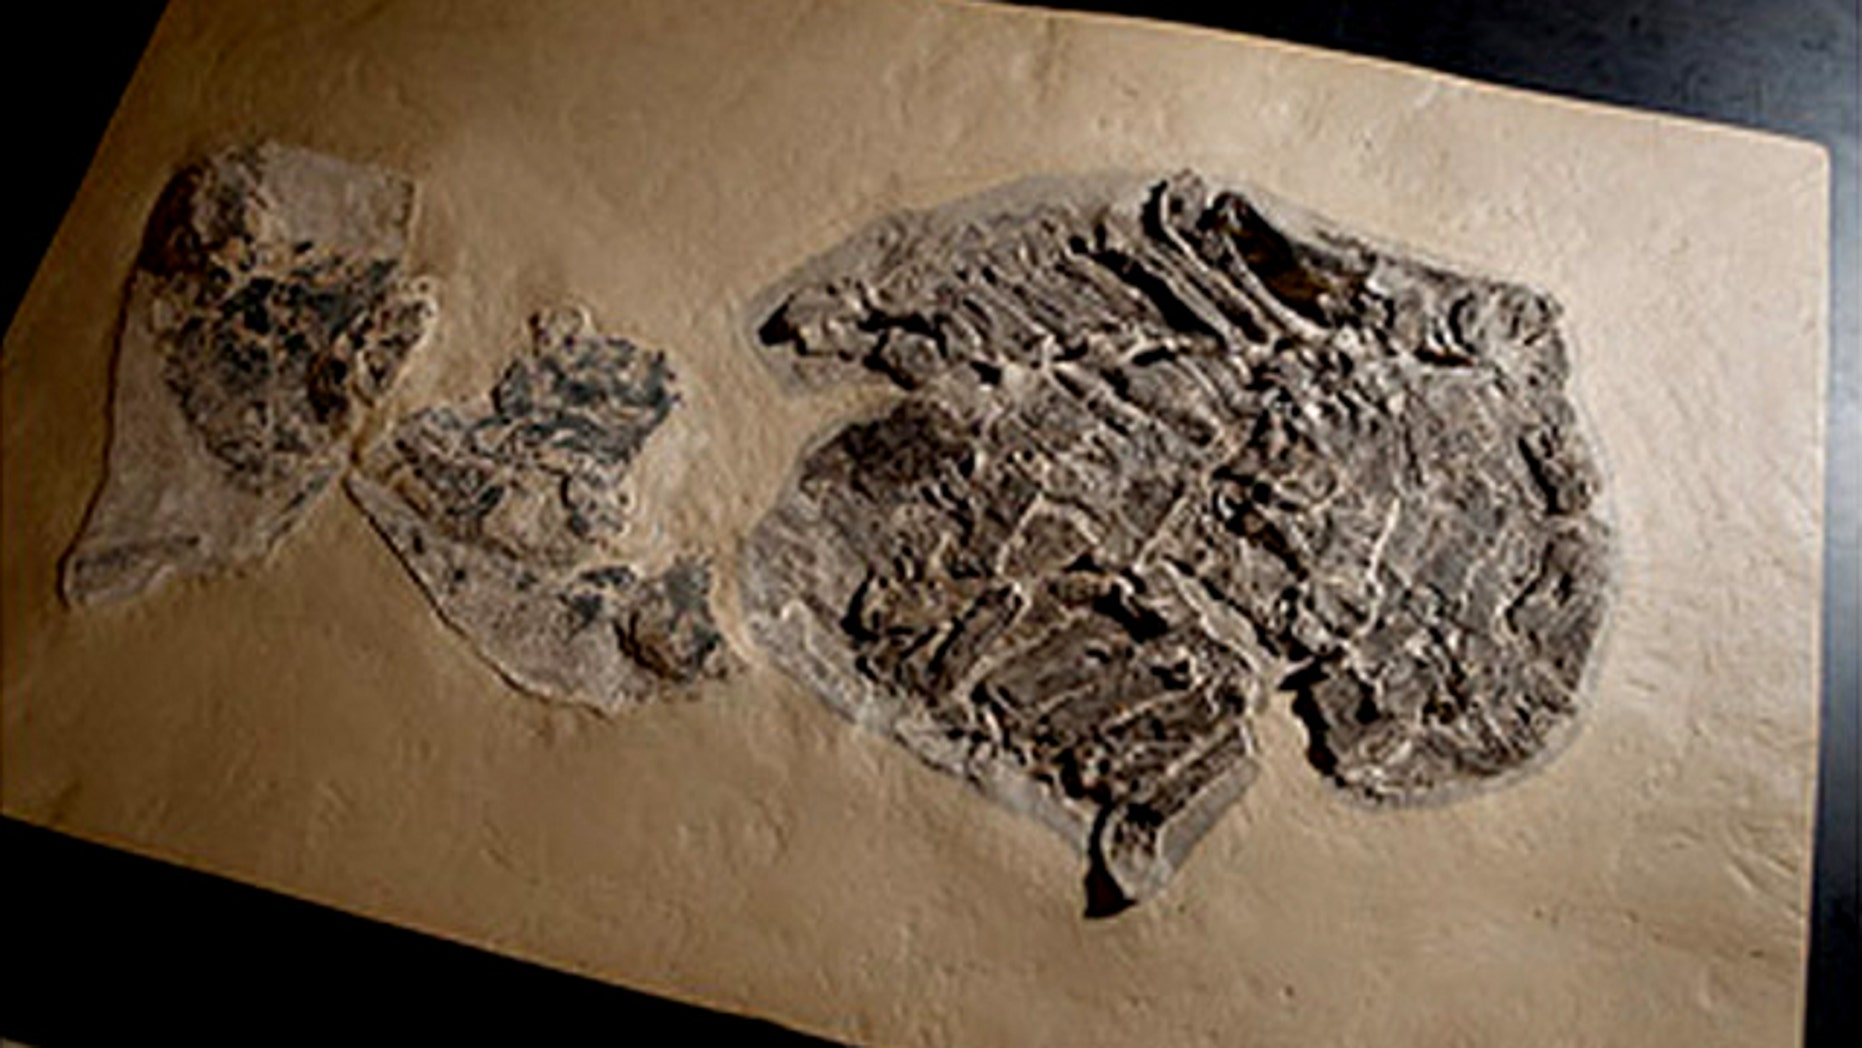 A Gladbachus shark fossil used in the research, pictured in the scientists' lab.